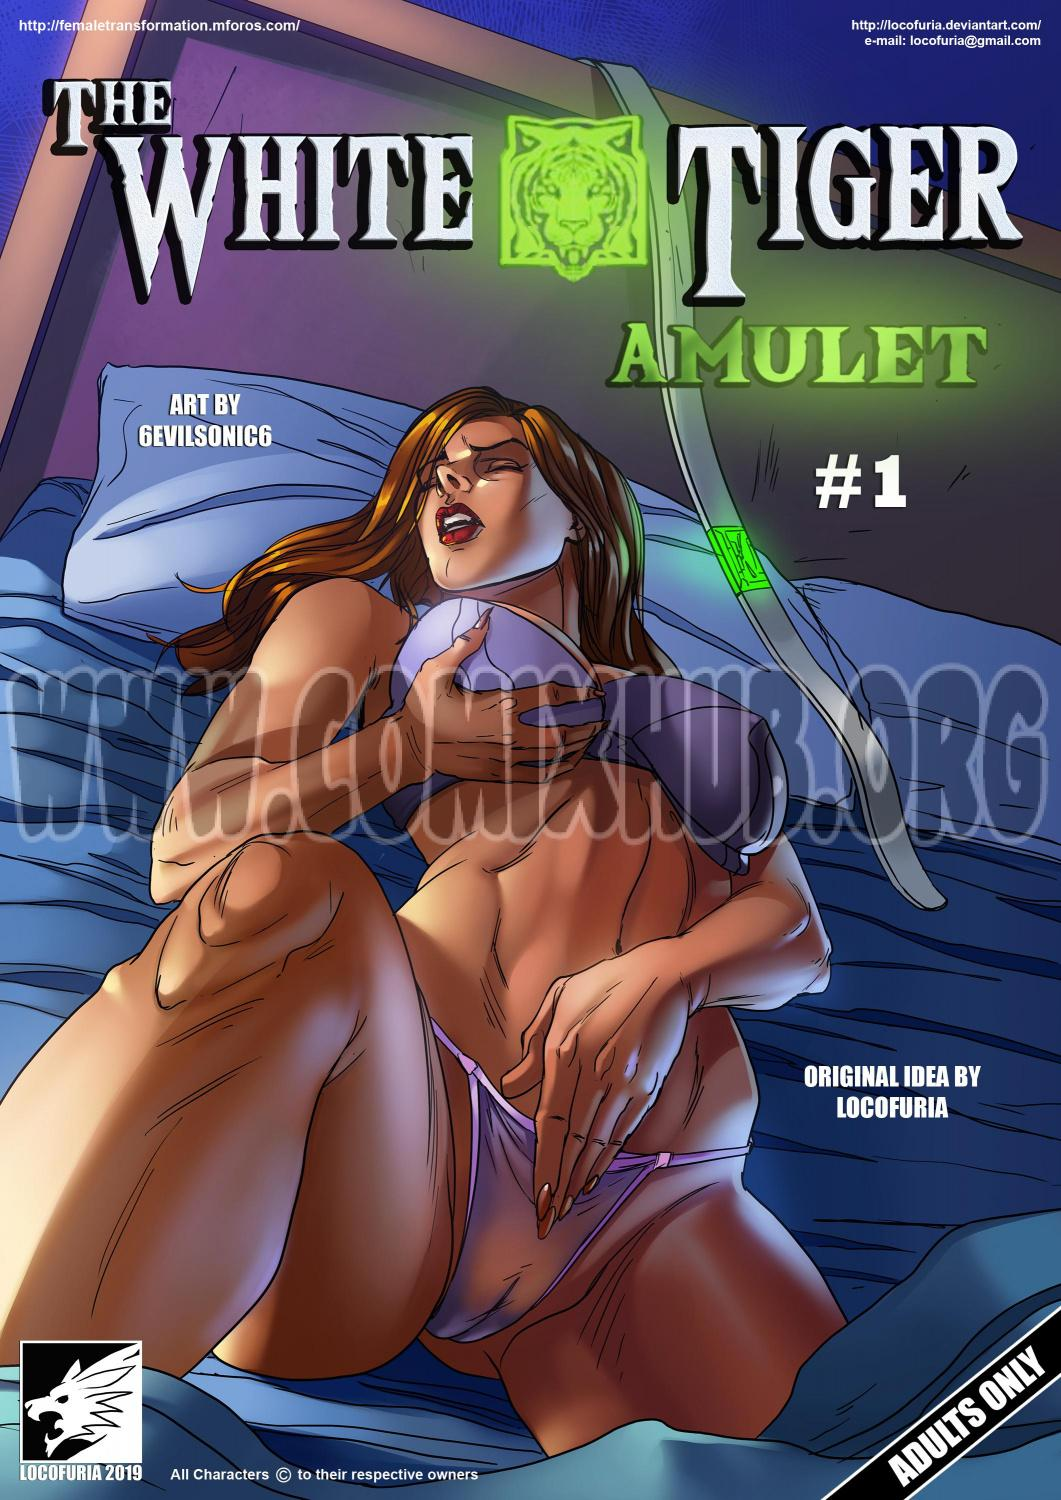 The White Tiger Amulet 1 porn comics Oral sex, Bestiality, Blowjob, cunnilingus, fingering, Furry, Masturbation, Straight